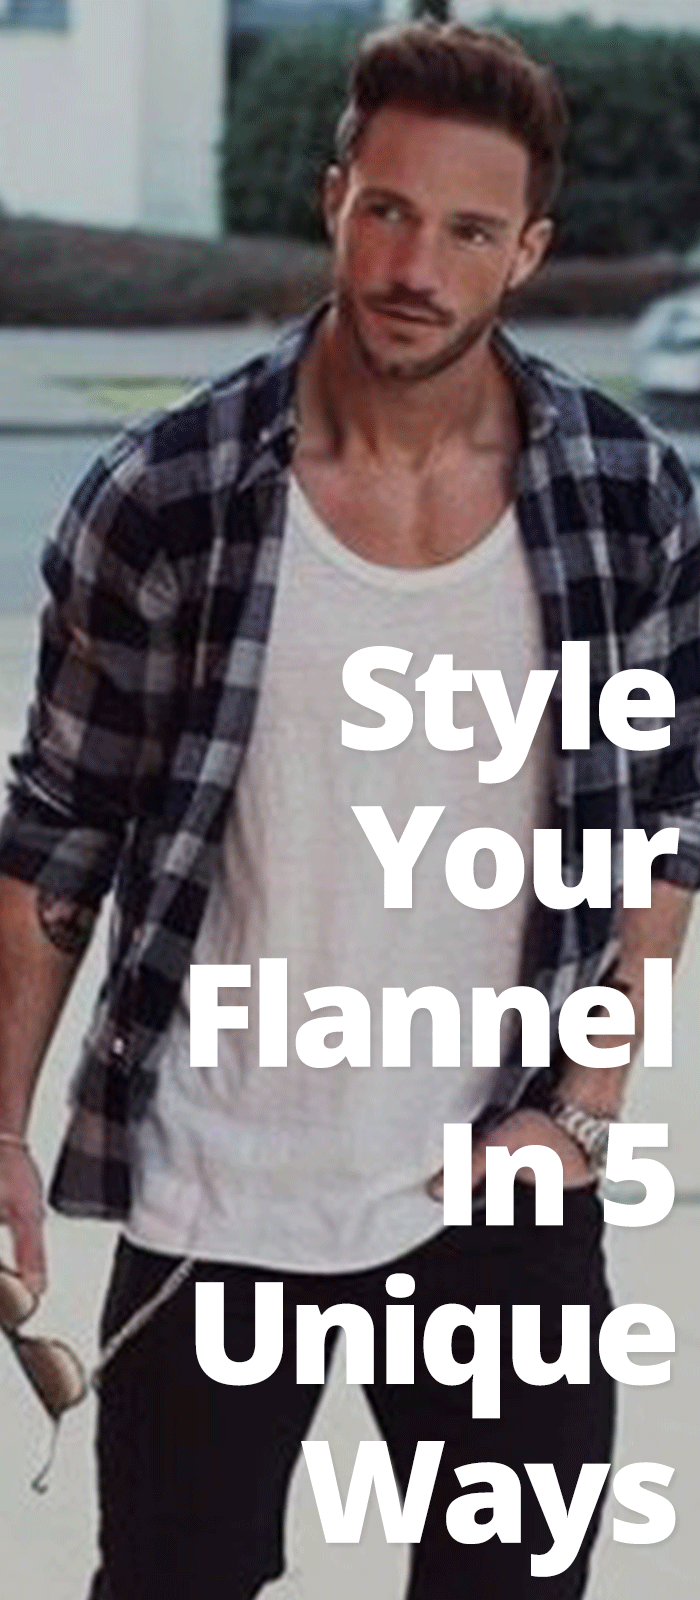 Flannel men's style   Different Ways to Style Your Flannel Shirt  Menswear  Pinterest